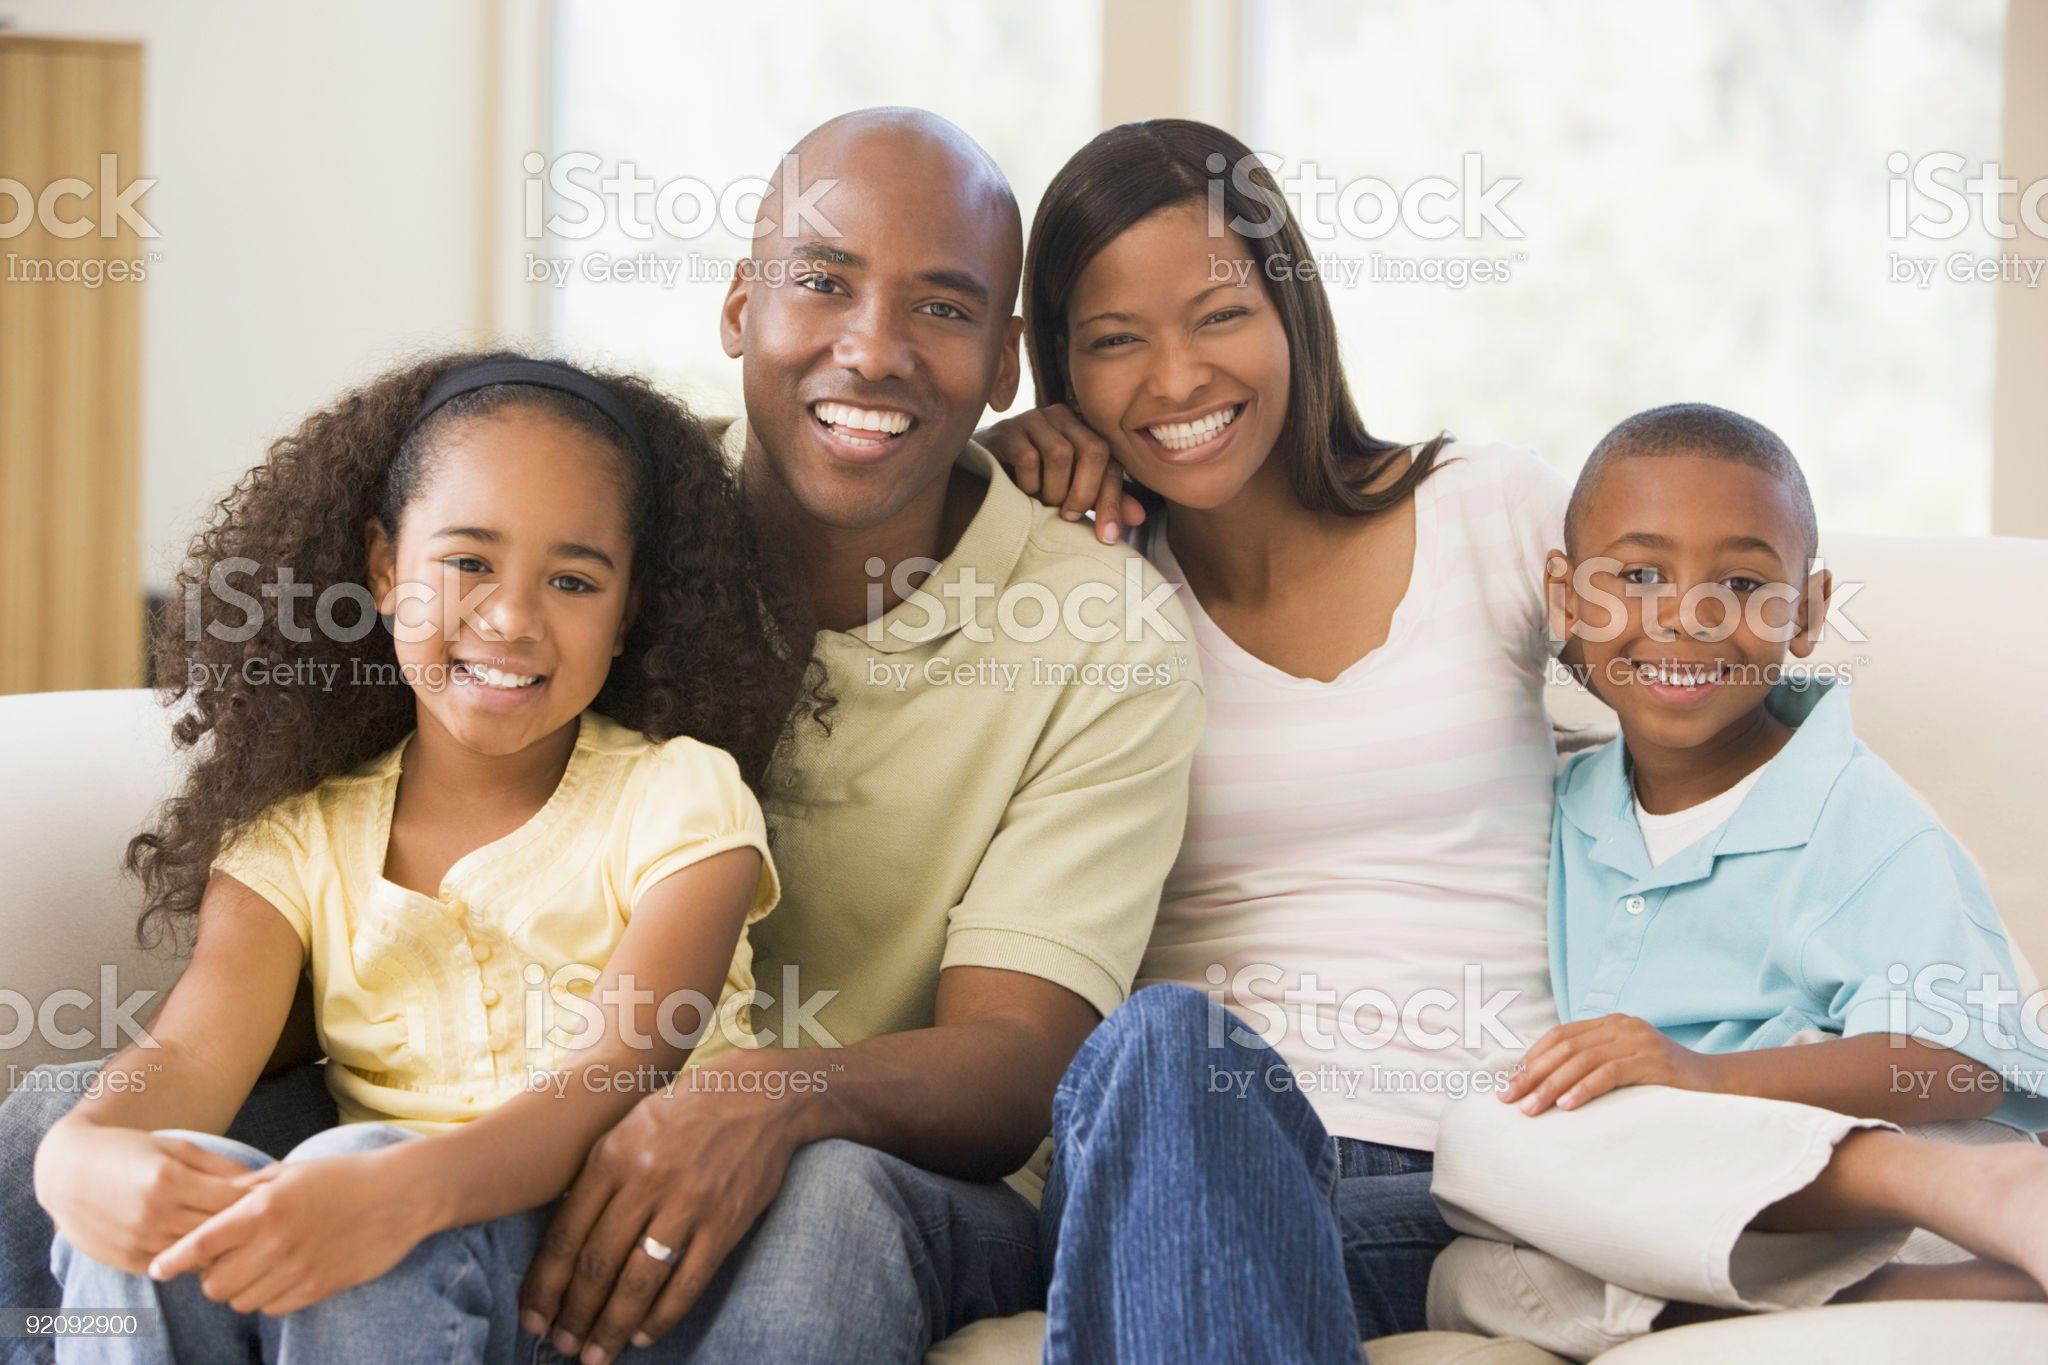 Family sitting in living room smiling royalty-free stock photo